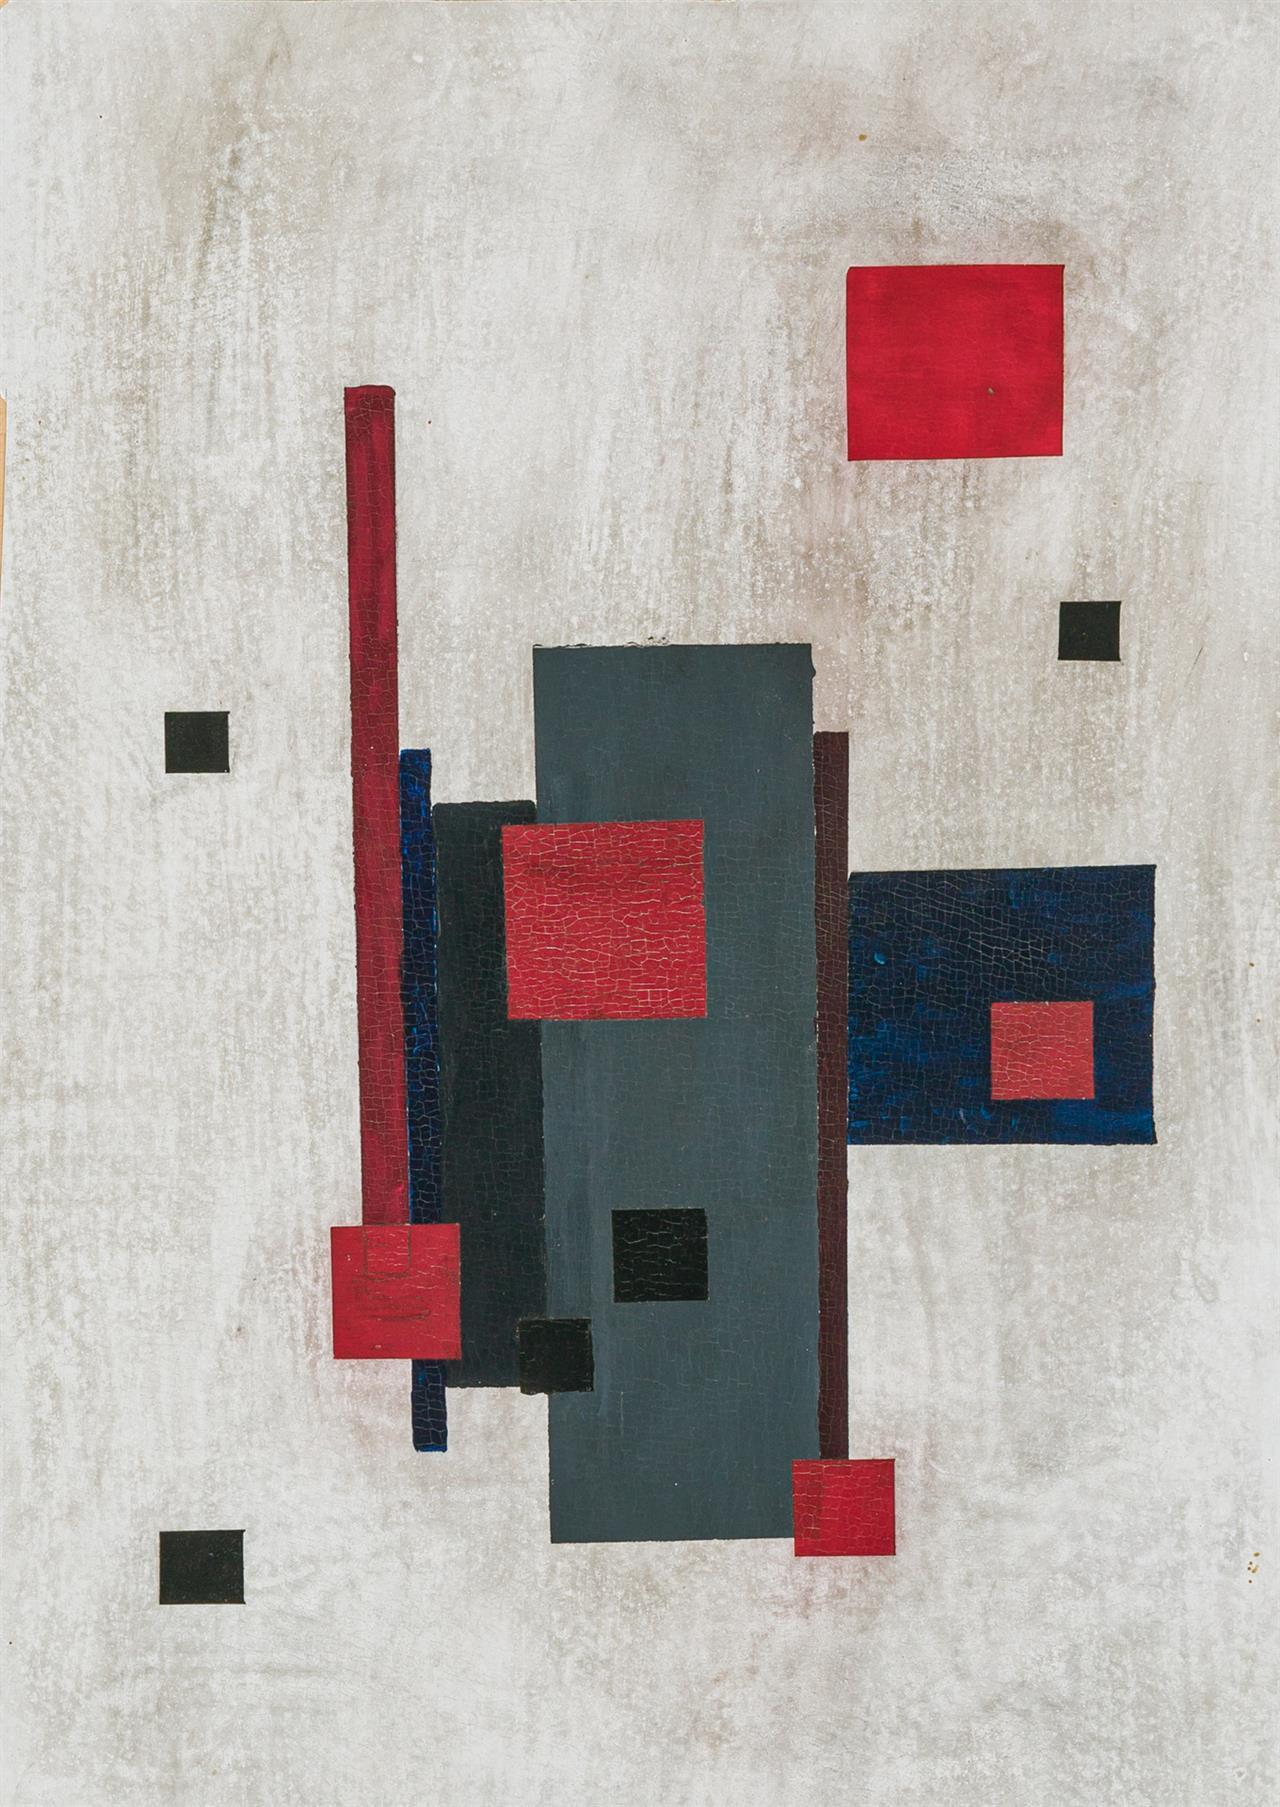 NIKOLAY SUETIN (Attributed), Russian (1897-1945), Abstract, oil on card, unsigned, 17 1/4 x 12 1/4 inches (sheet)